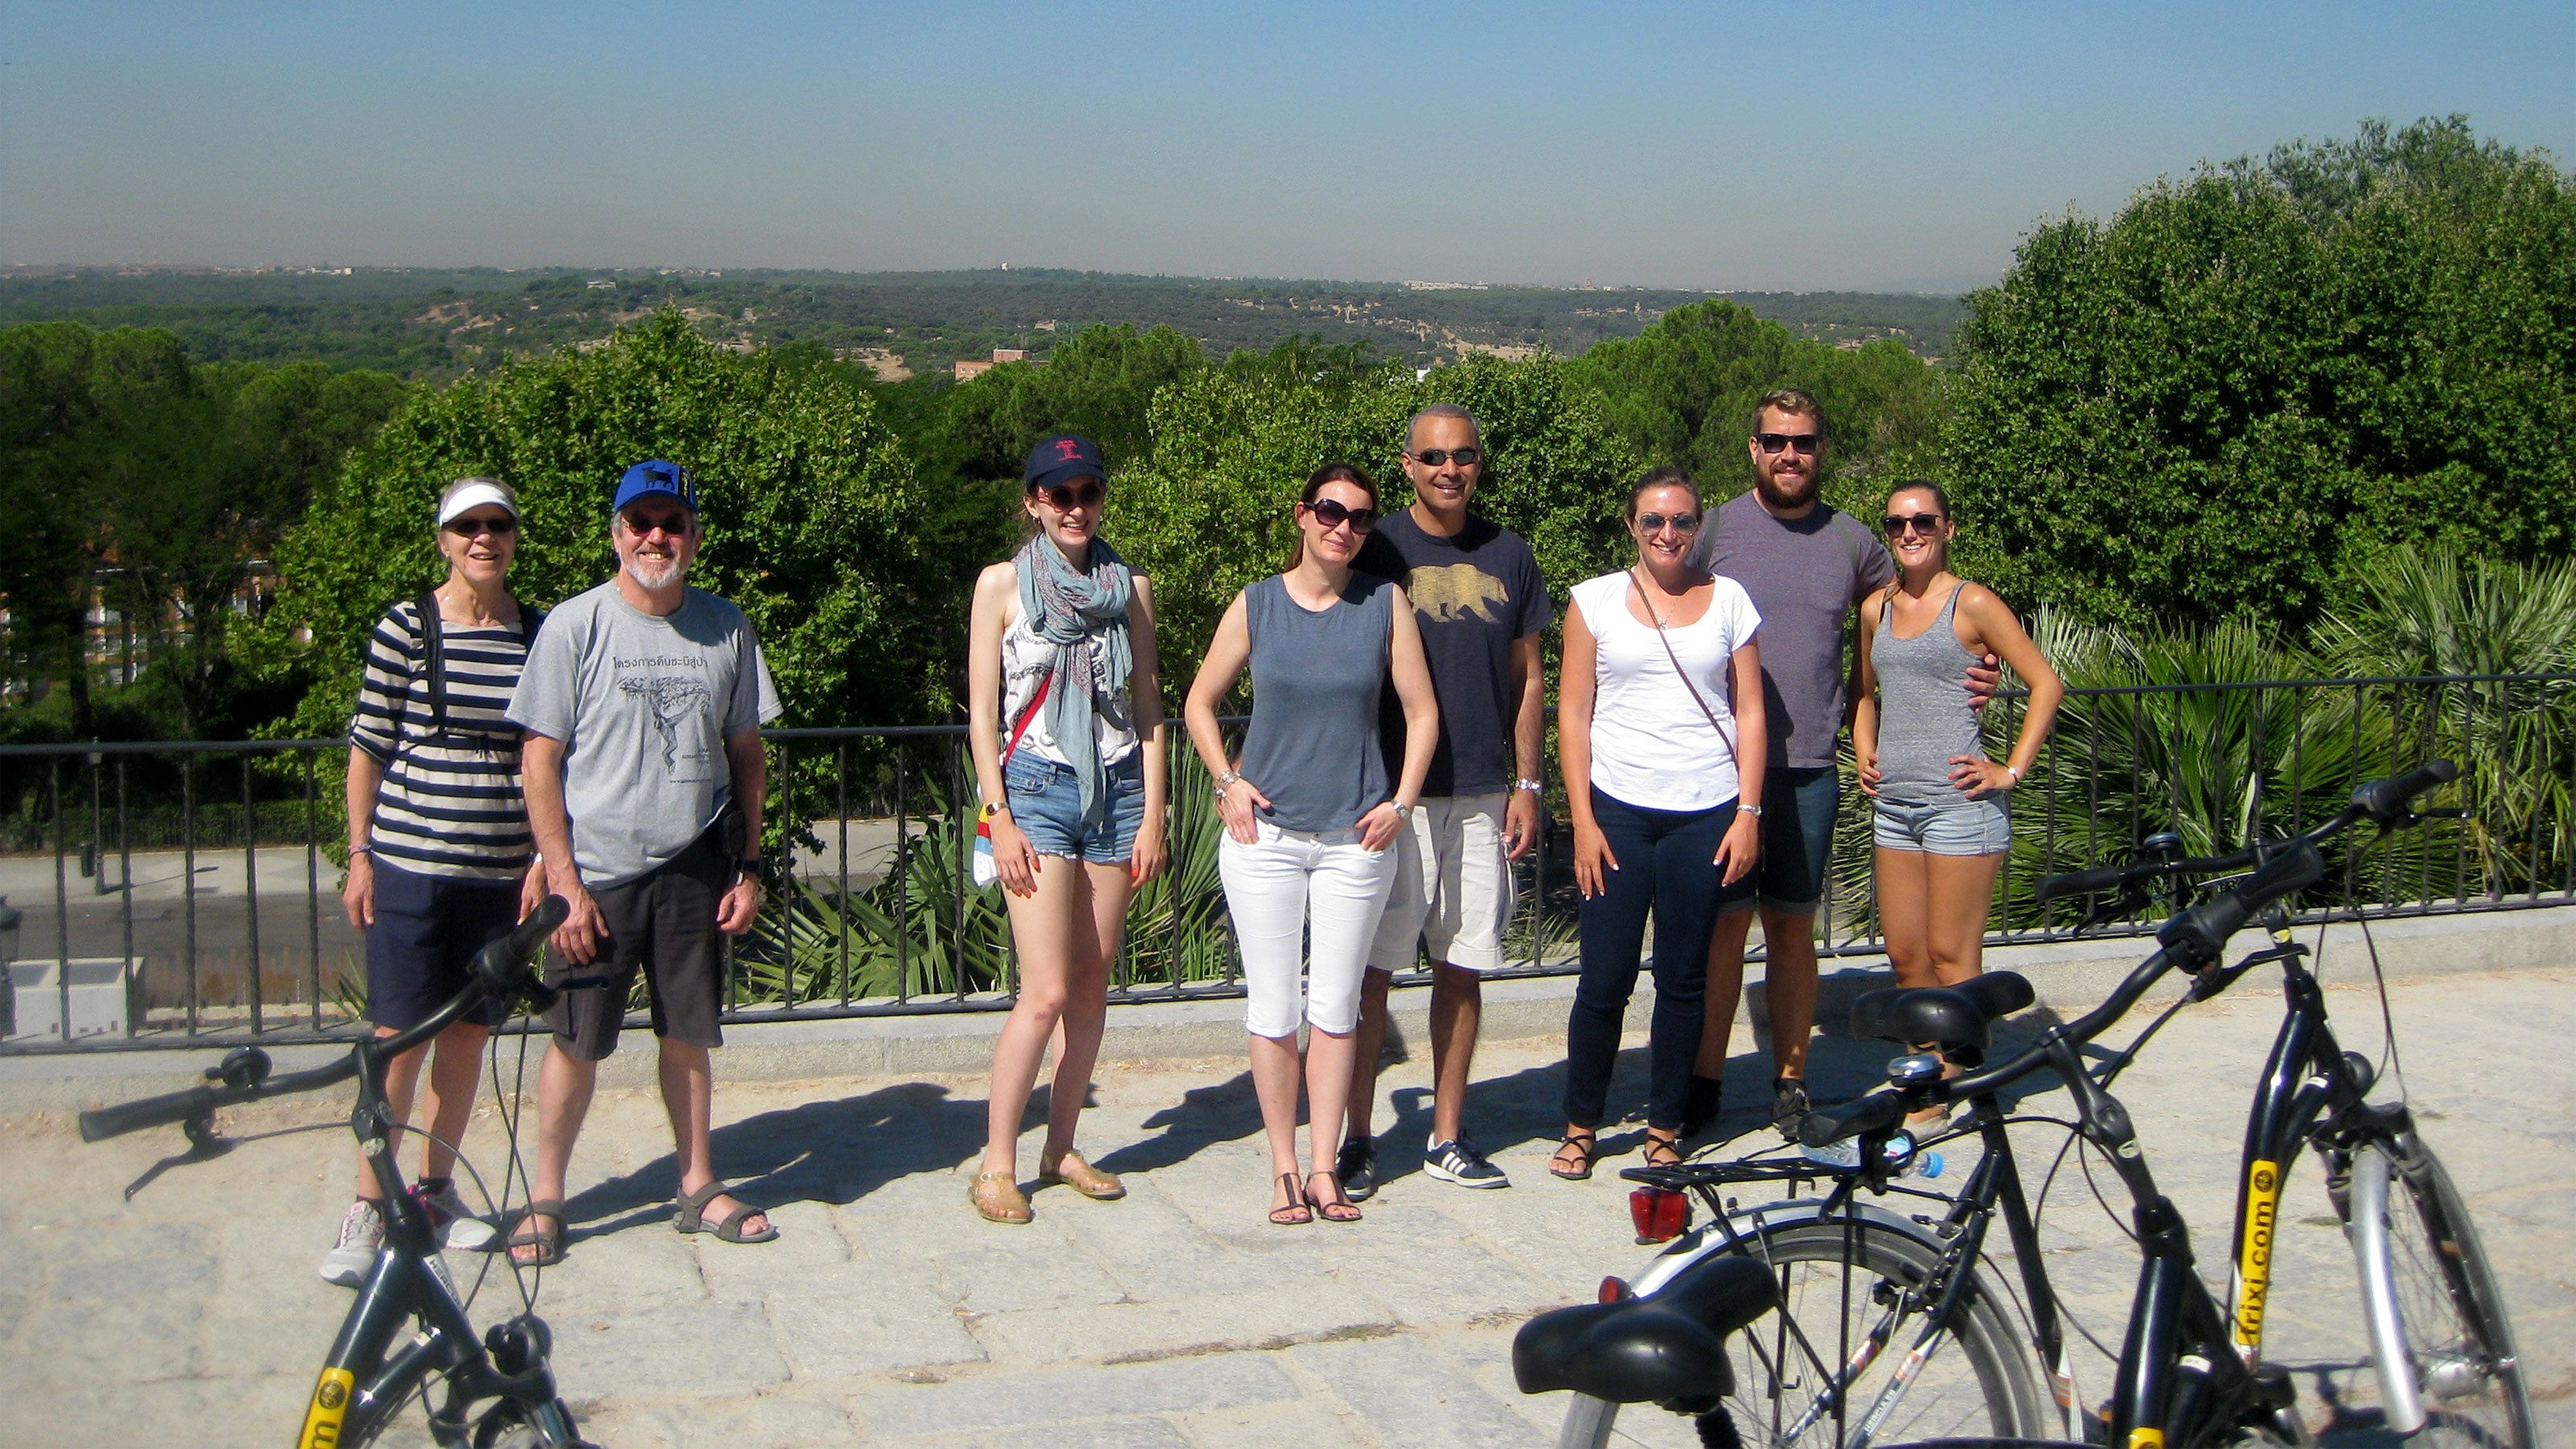 Bicycling group takes a break for a picture in Madrid